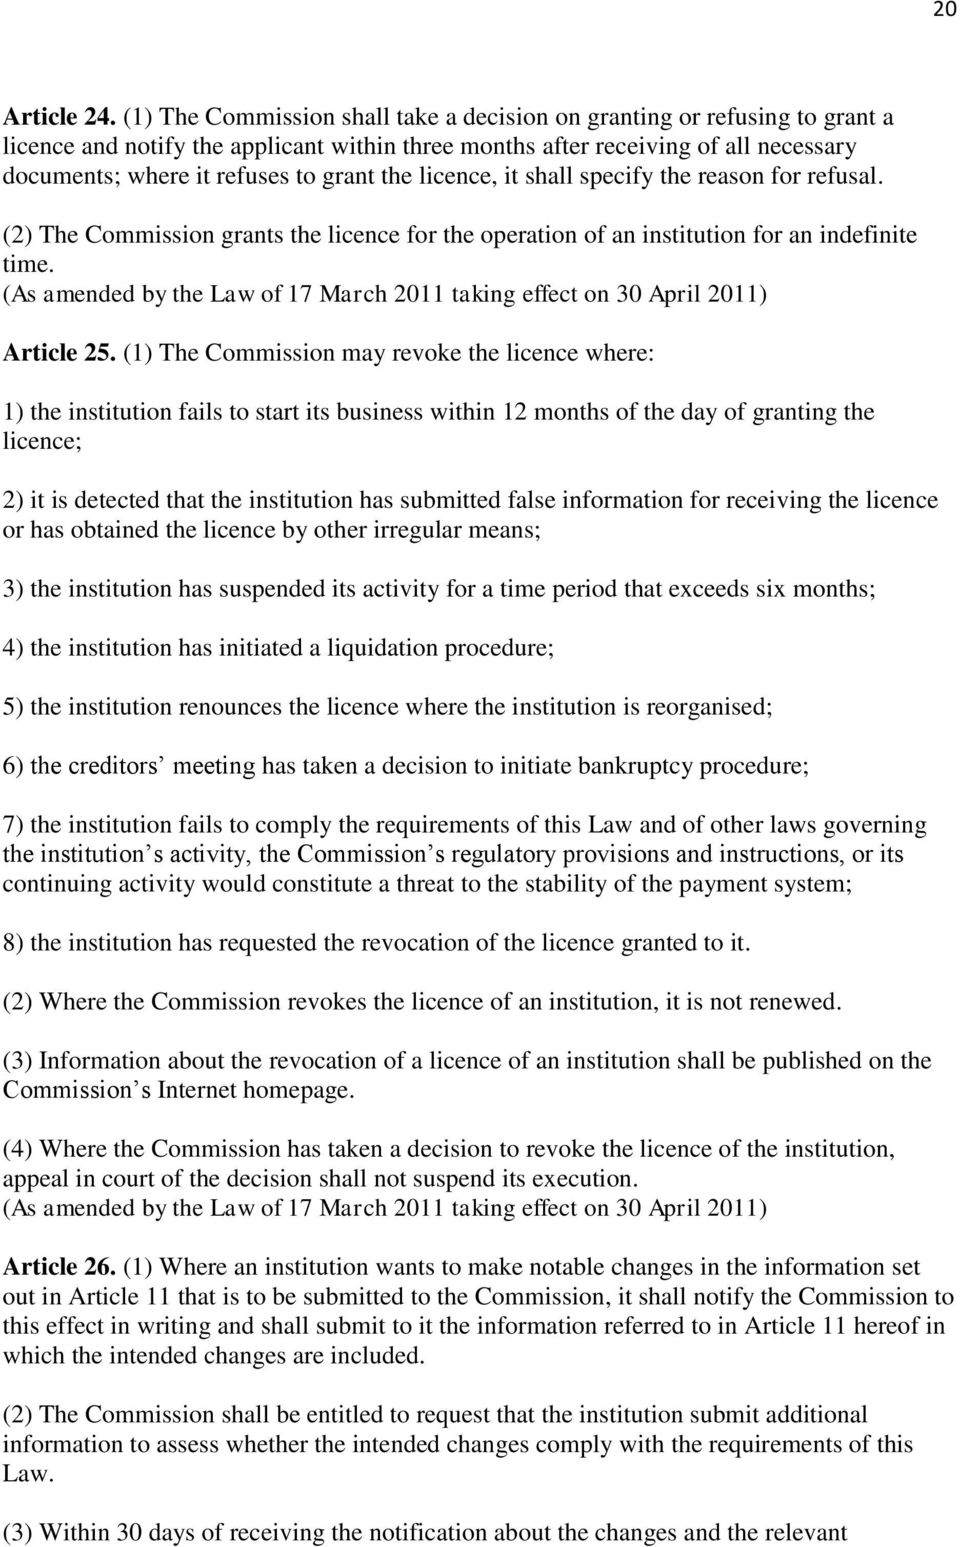 the licence, it shall specify the reason for refusal. (2) The Commission grants the licence for the operation of an institution for an indefinite time. Article 25.